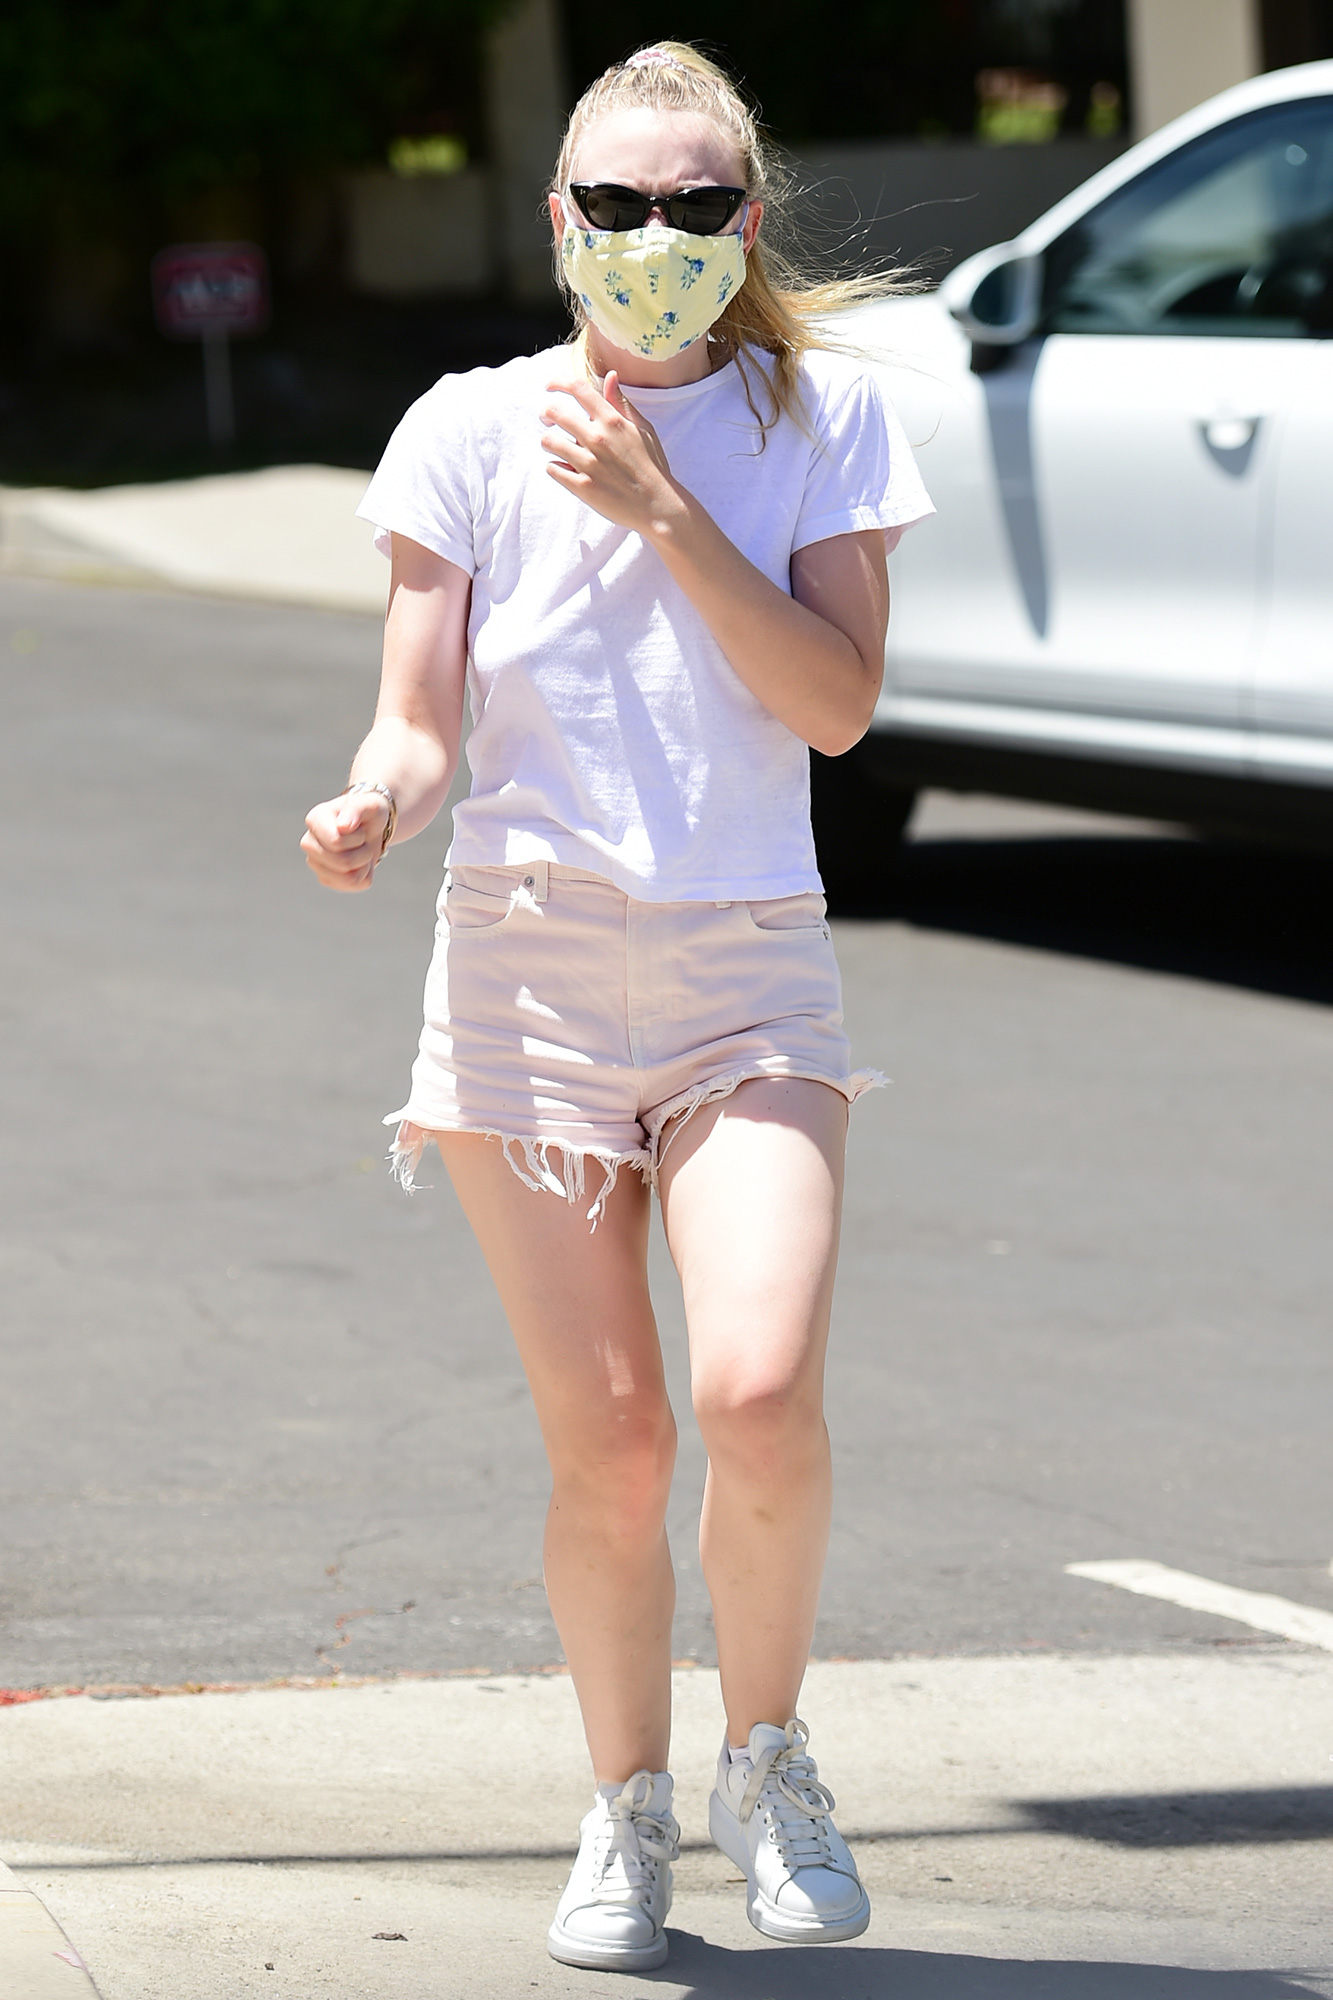 Dakota Fanning is Pictured Out and About in Los Angeles.